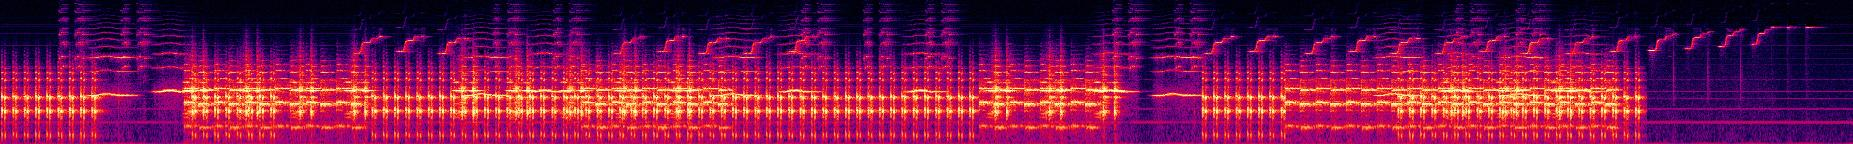 A Game of Chess - 11. Game A - Spectrogram.jpg